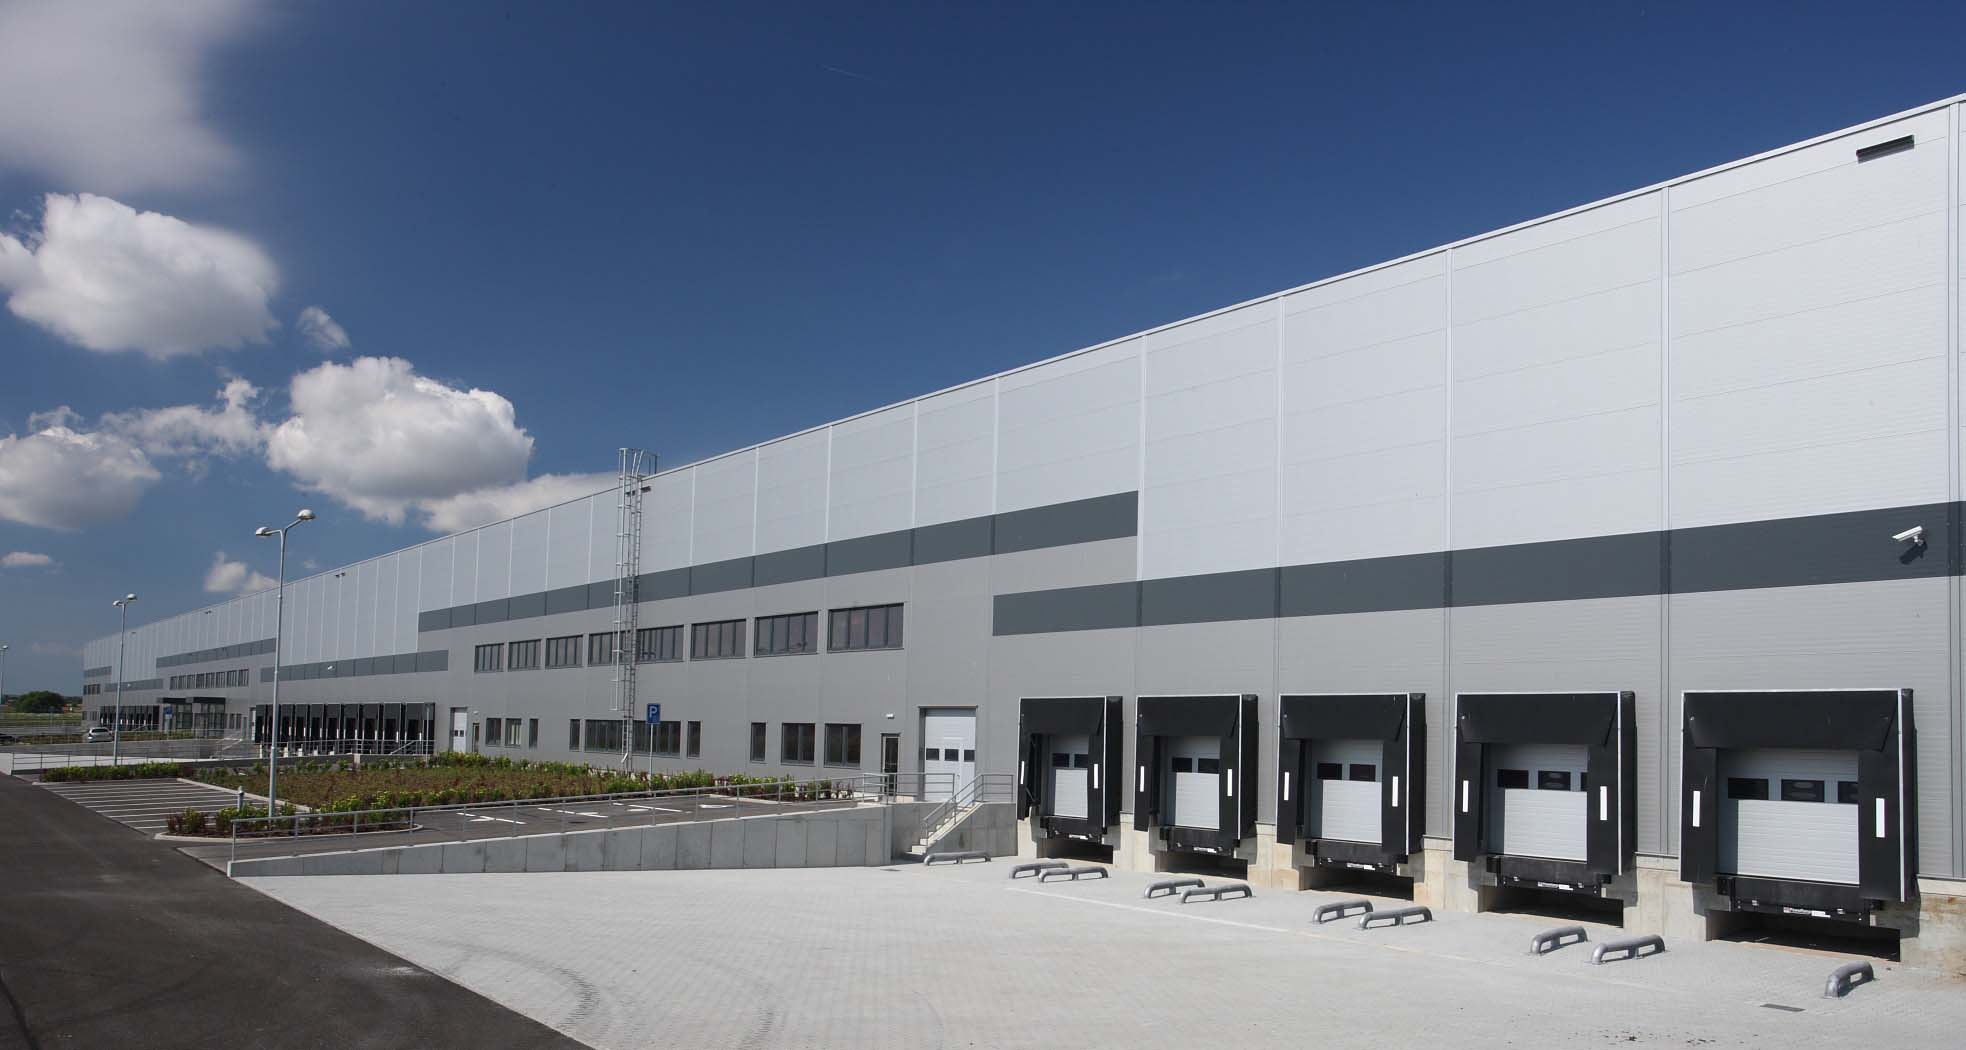 Large Warehouse with Dock High Docks, Links to Site Help